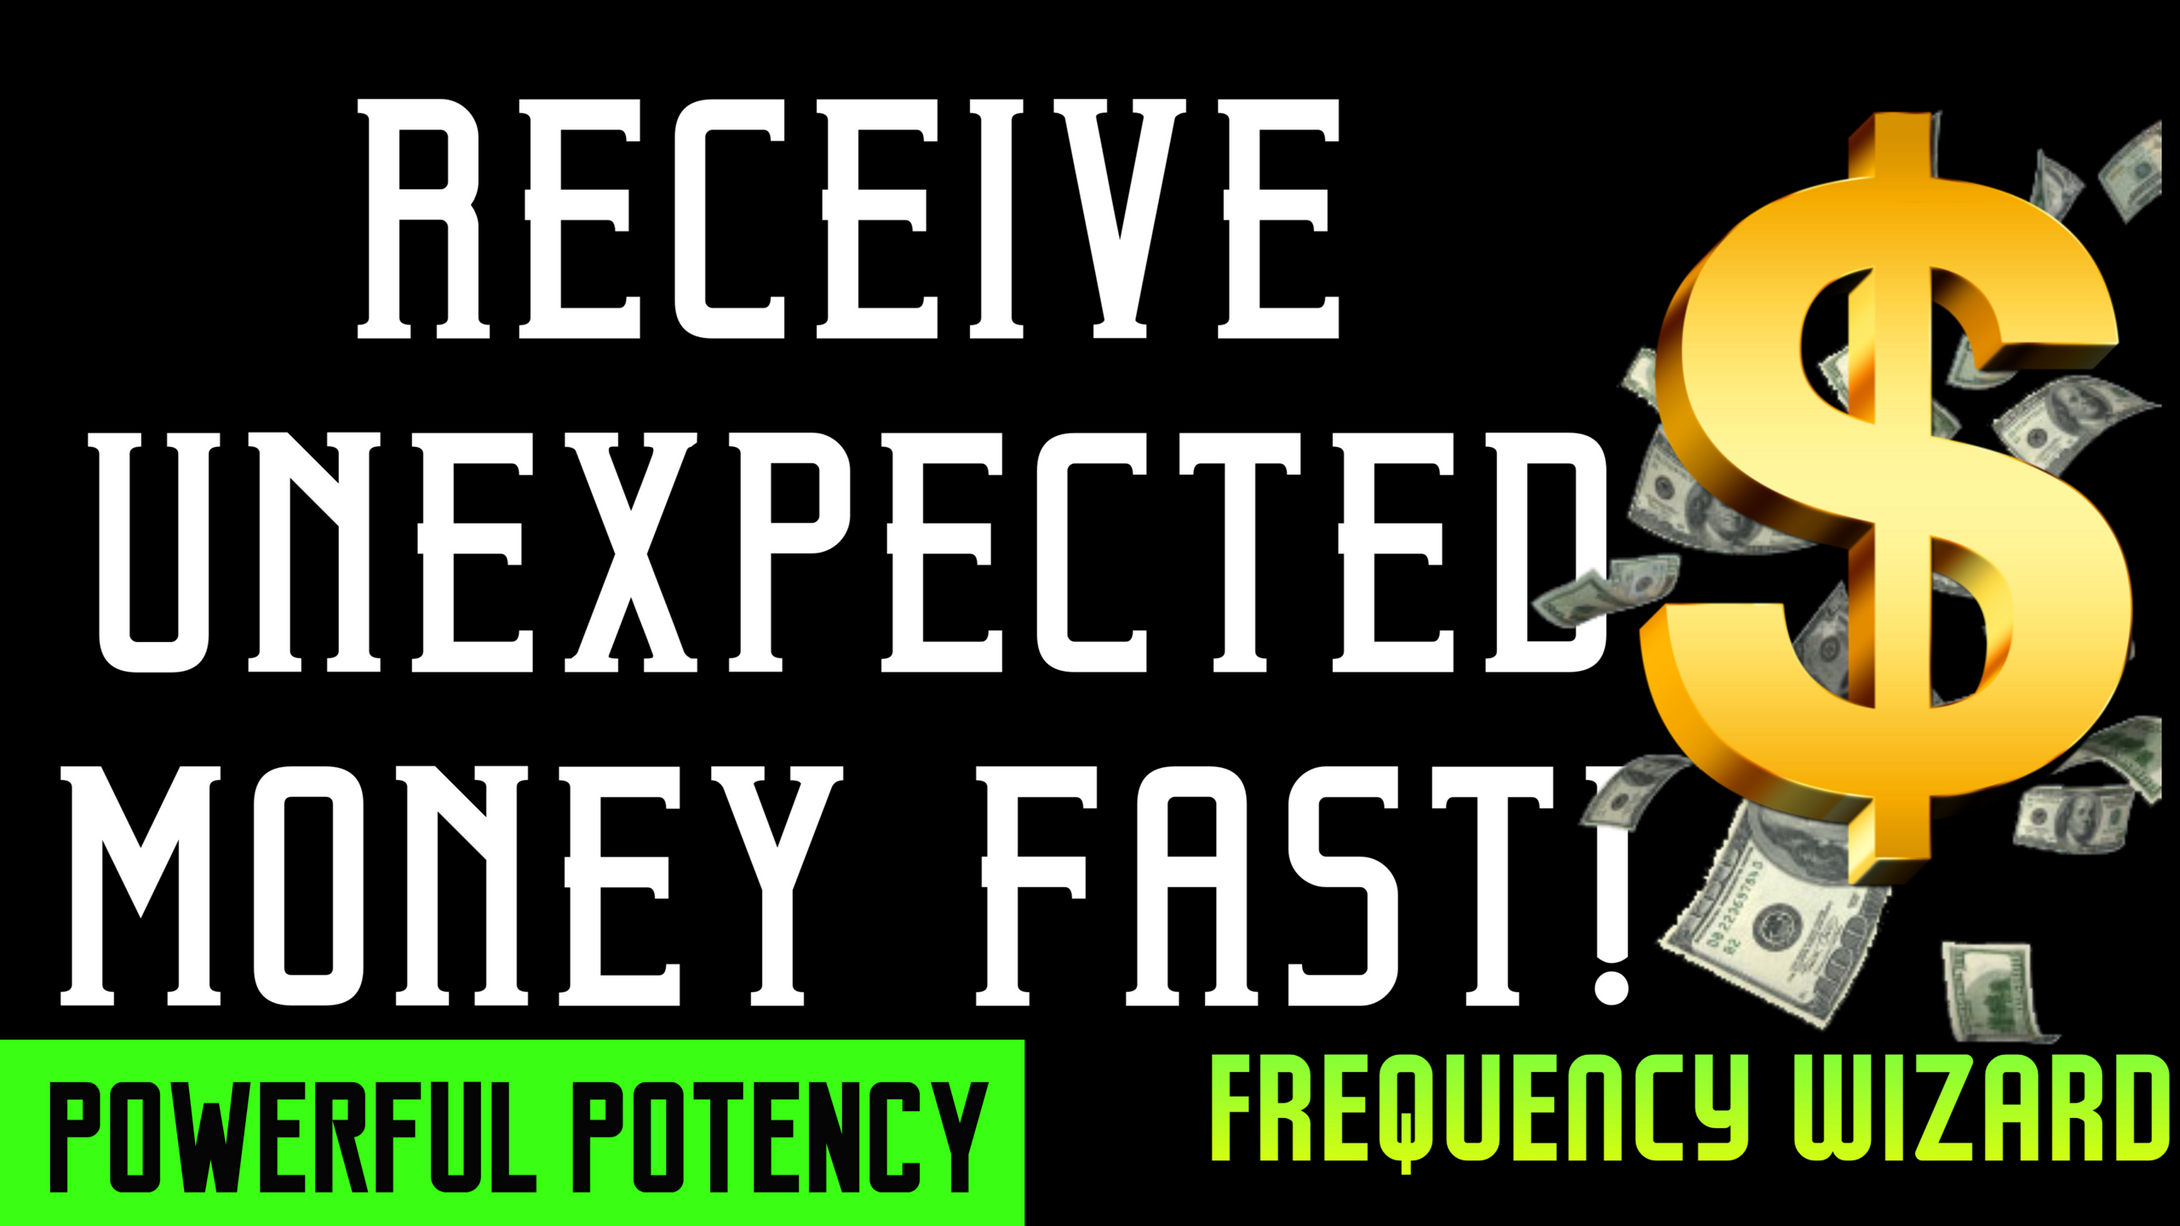 RECEIVE UNEXPECTED MONEY AND WEALTH SUPER FAST! FORCED SUBLIMINAL FREQUENCY WIZARD